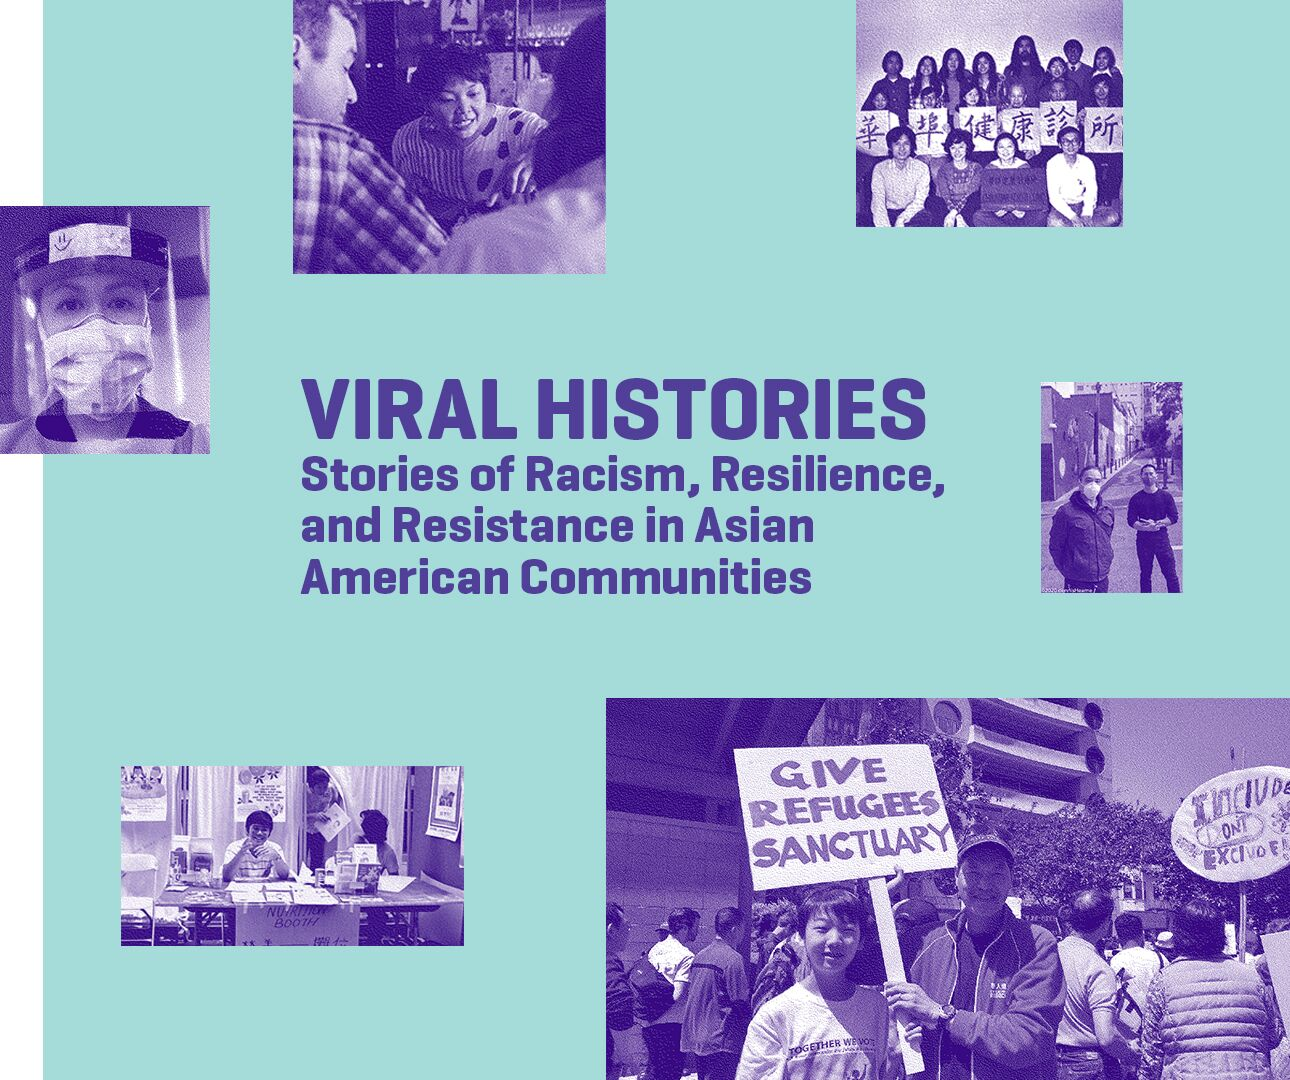 Viral Histories: Stories of Racism, Resilience, and Resistance in Asian American Communities